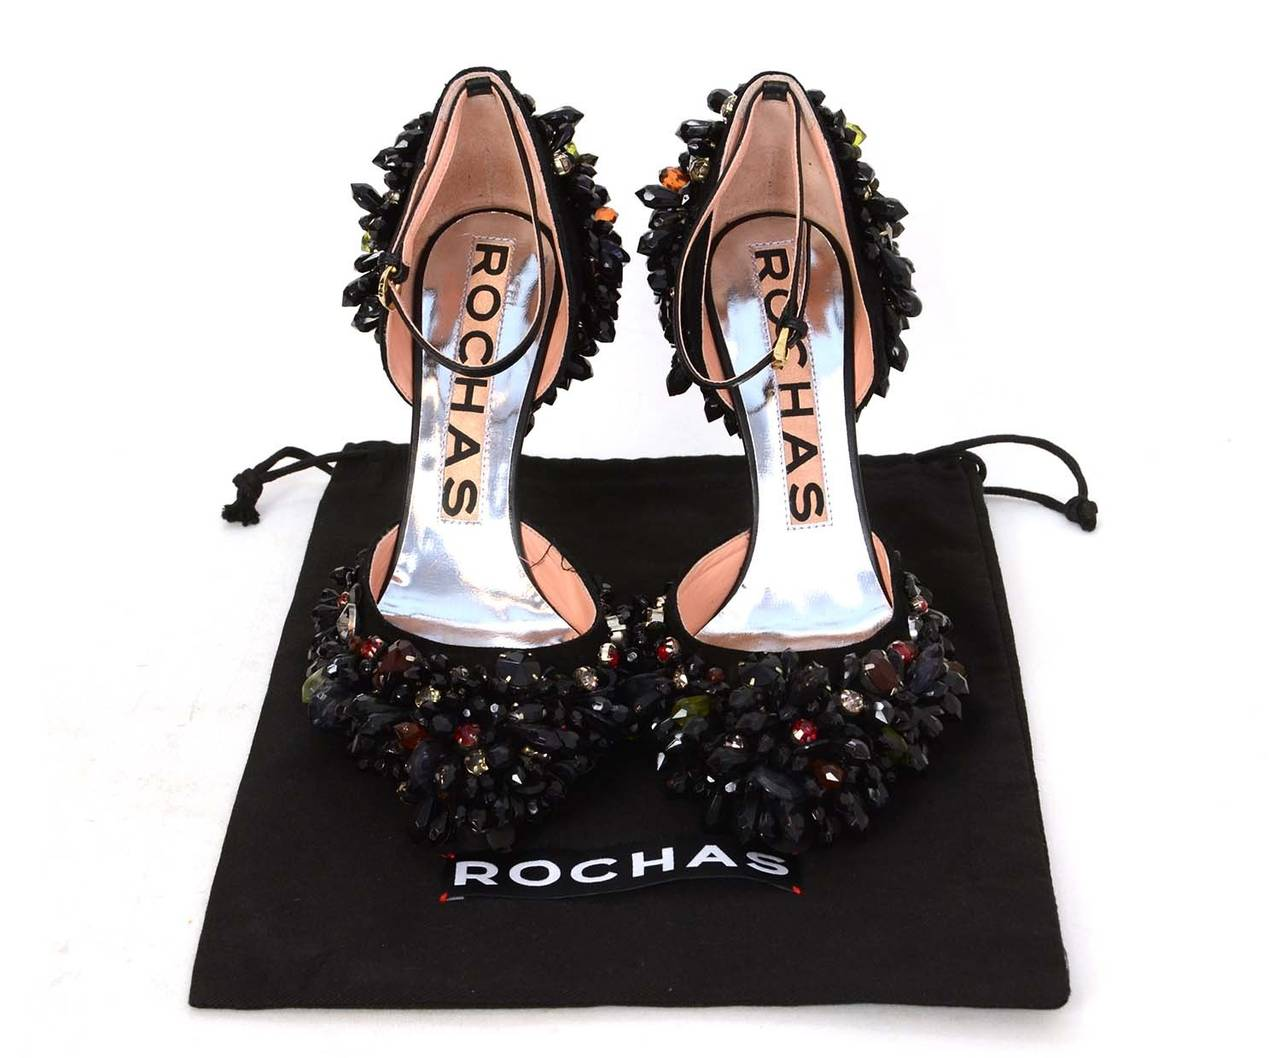 ROCHAS Black Embellished Pointed Toe Pumps sz 39 rt. $2,075 For Sale 4